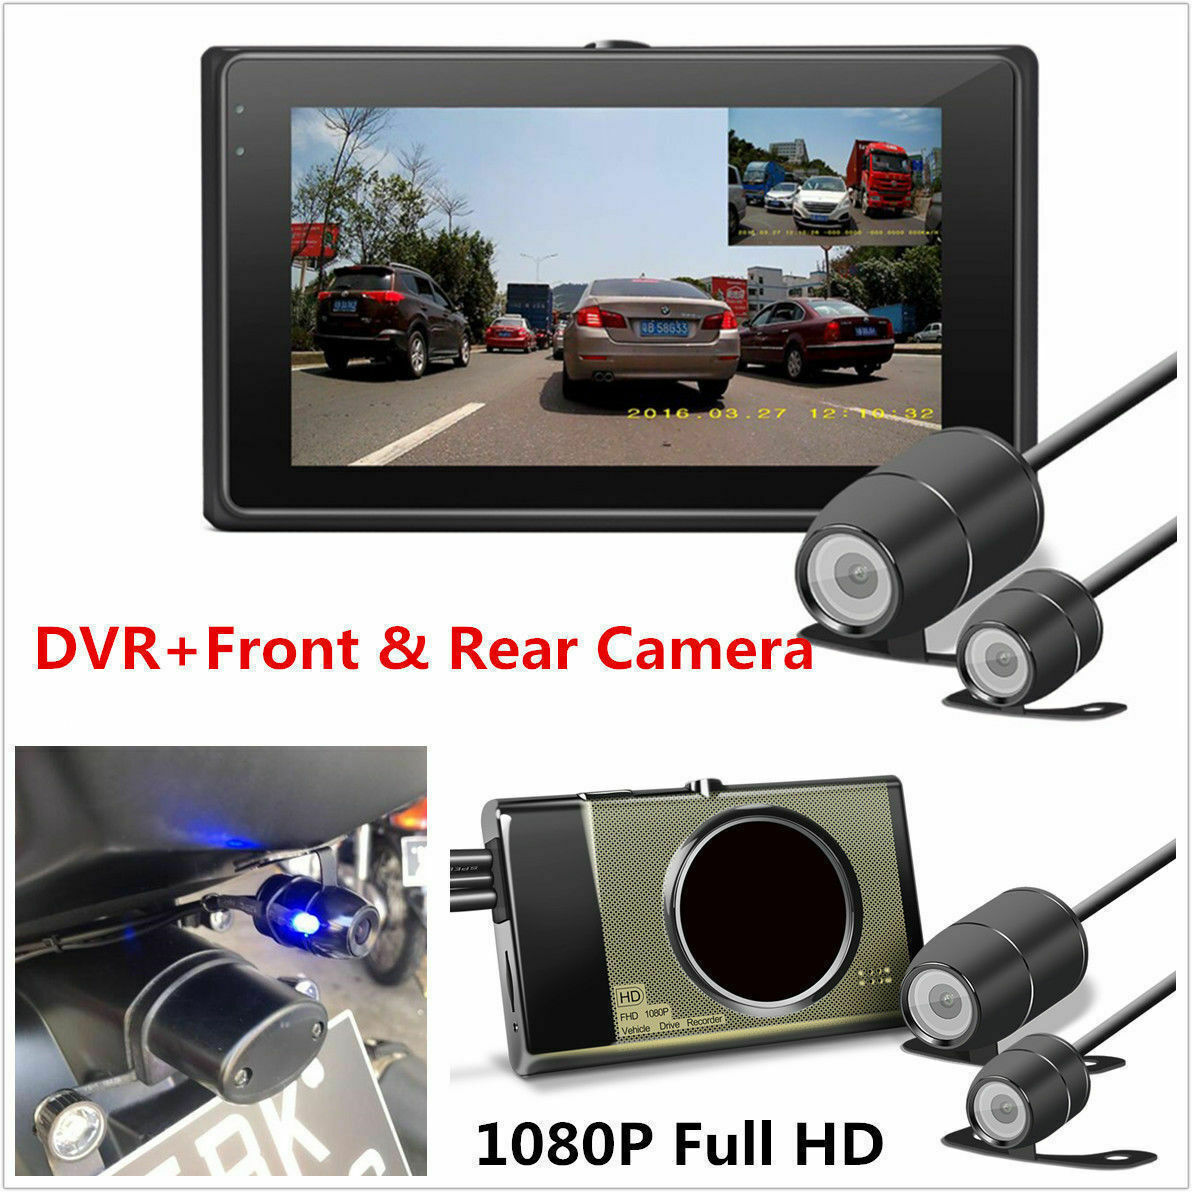 HD 1080P/720P Front/Rear View Camera Motorcycle DVR Dash Cam Camera GPS G-Sensor Night Vision 3